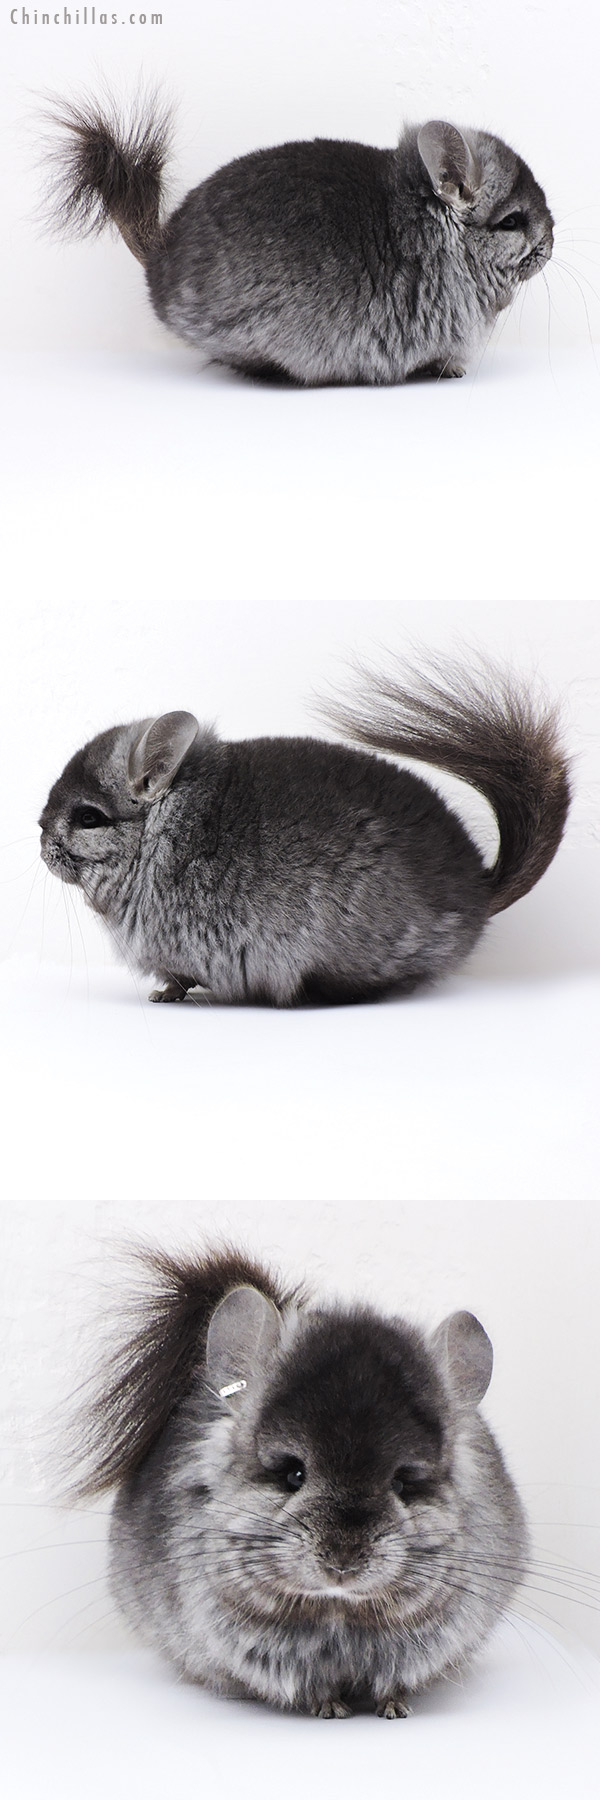 18079 Ebony Brevi Type CCCU Royal Persian Angora ( Locken Carrier ) Male Chinchilla